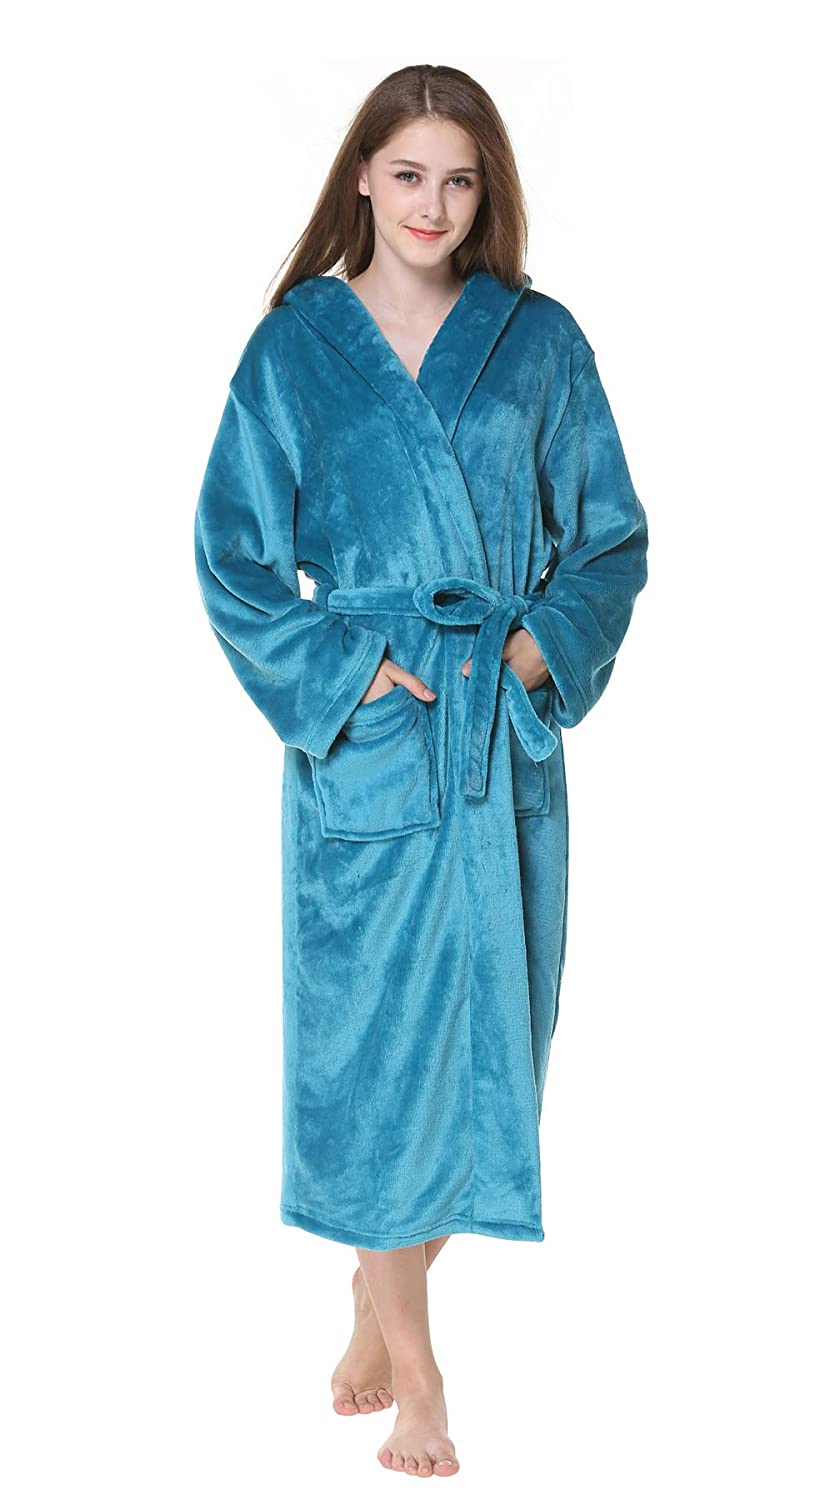 Honofash Bathrobe Women Dressing Gown Towelling Hooded Terry Fluffy